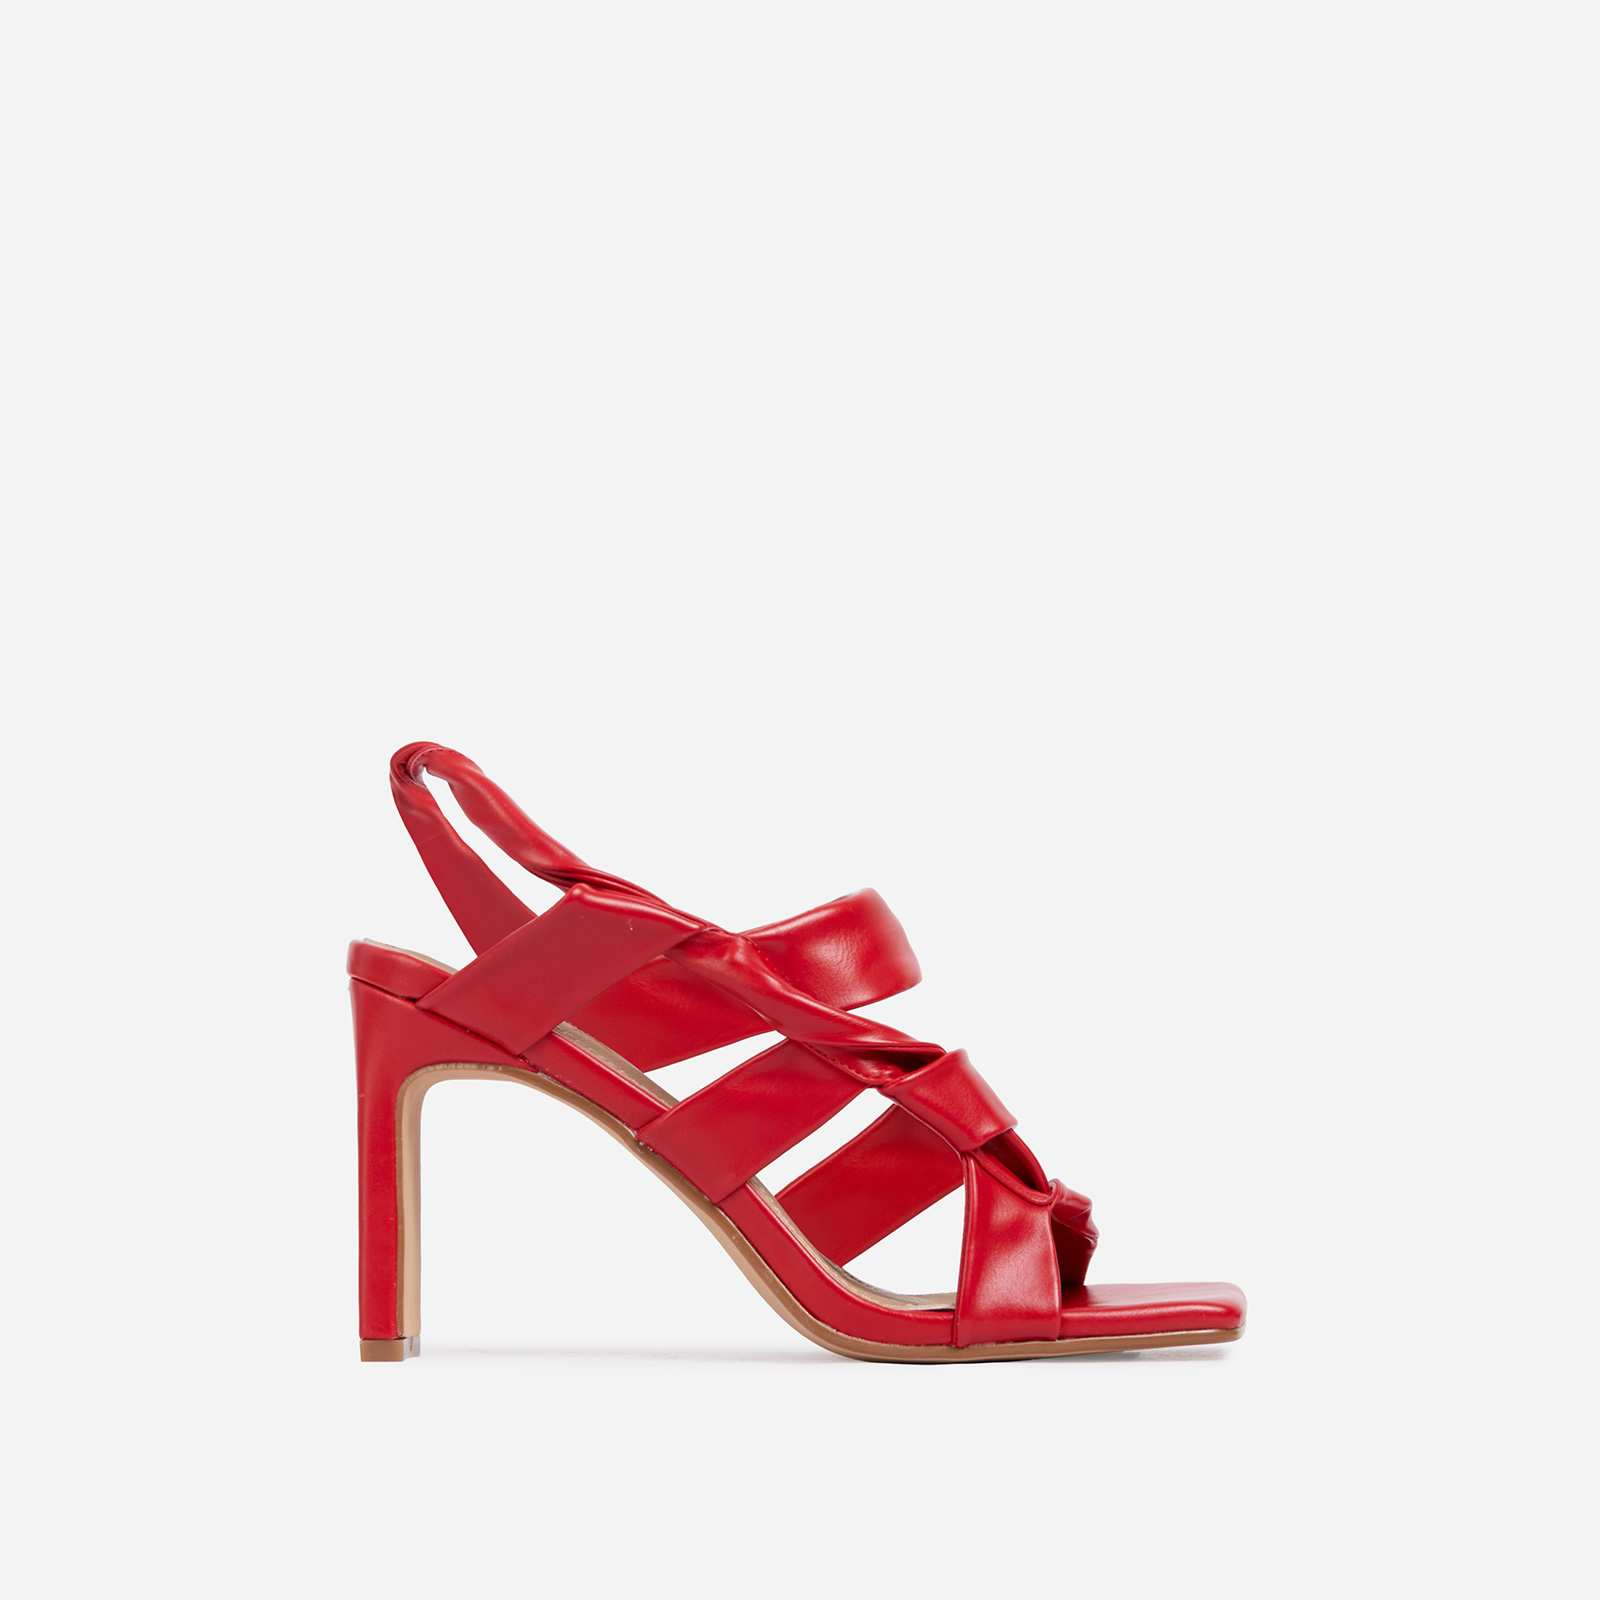 Ripple Strappy Caged Square Toe Heel Mule In Red Faux Leather